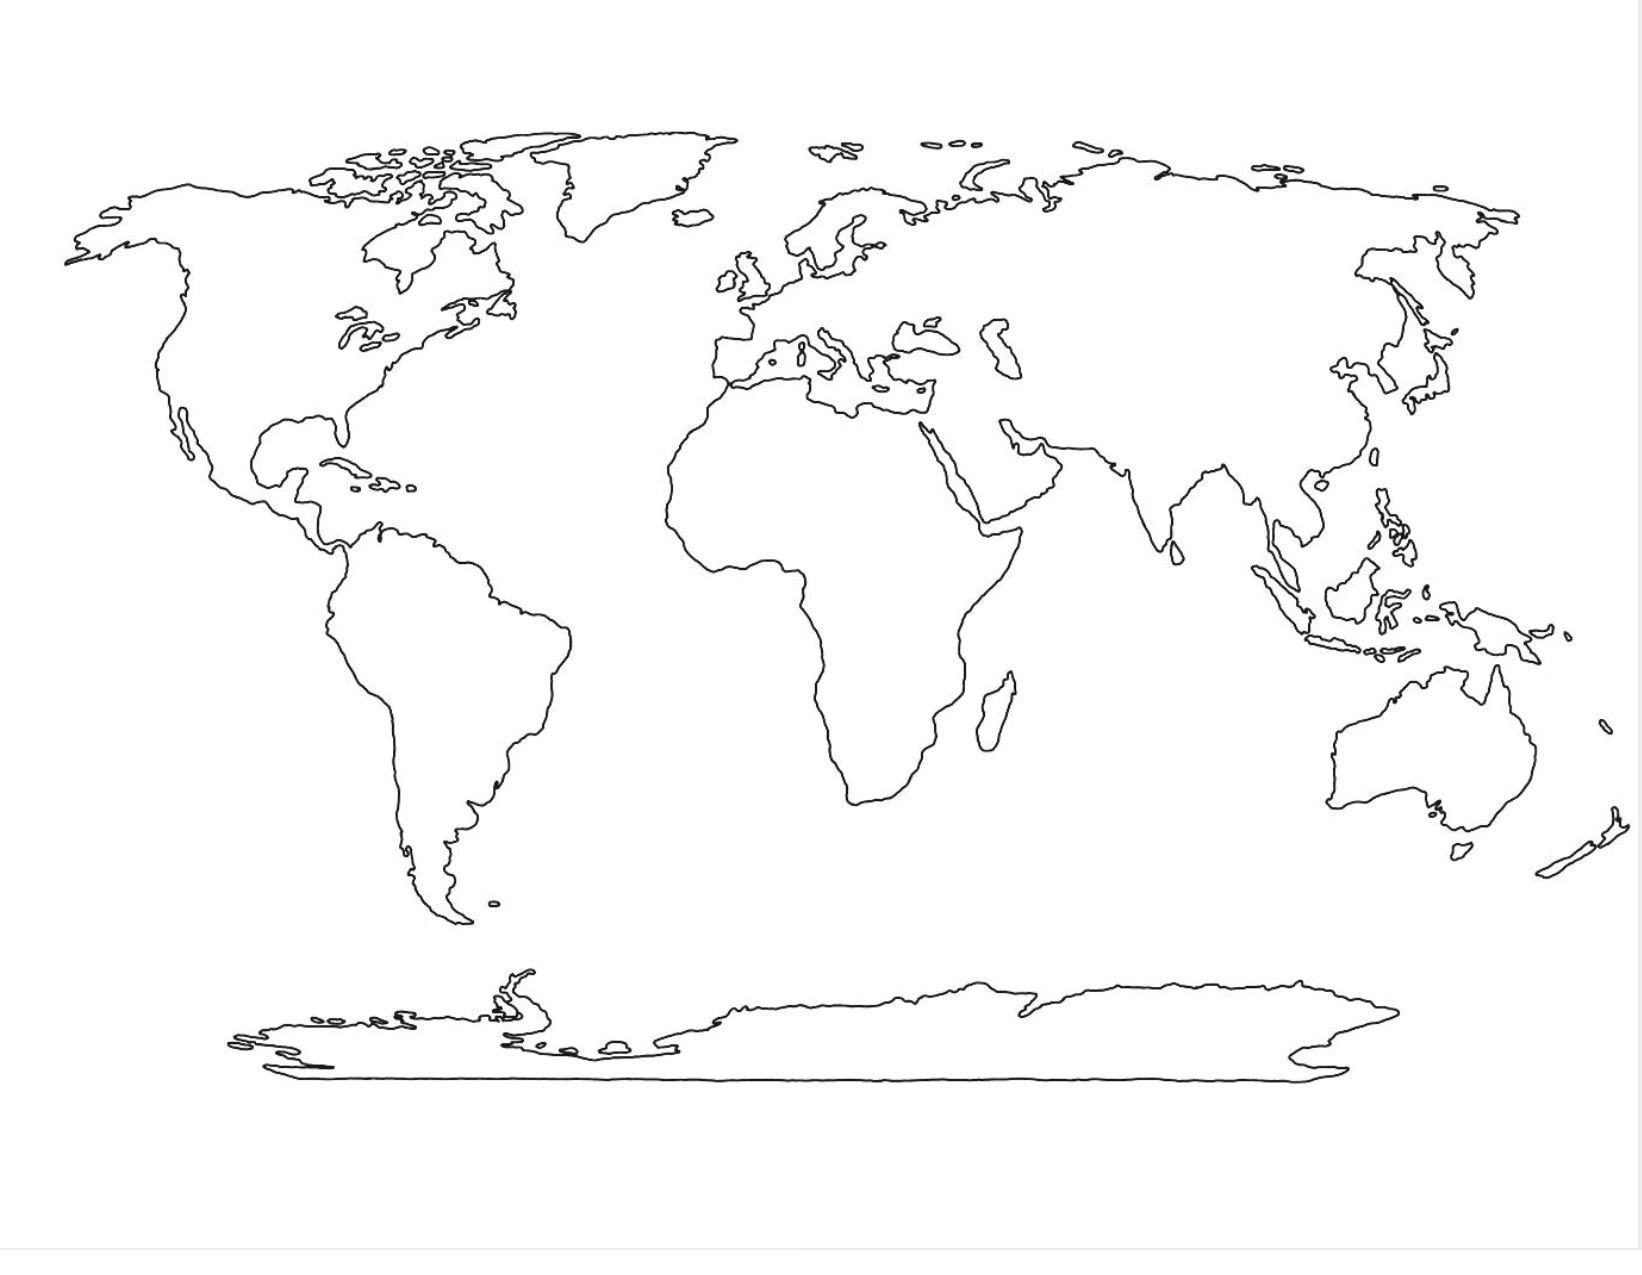 How To Draw Map Of World For How To Draw A World Map | DIY Me Tee ...